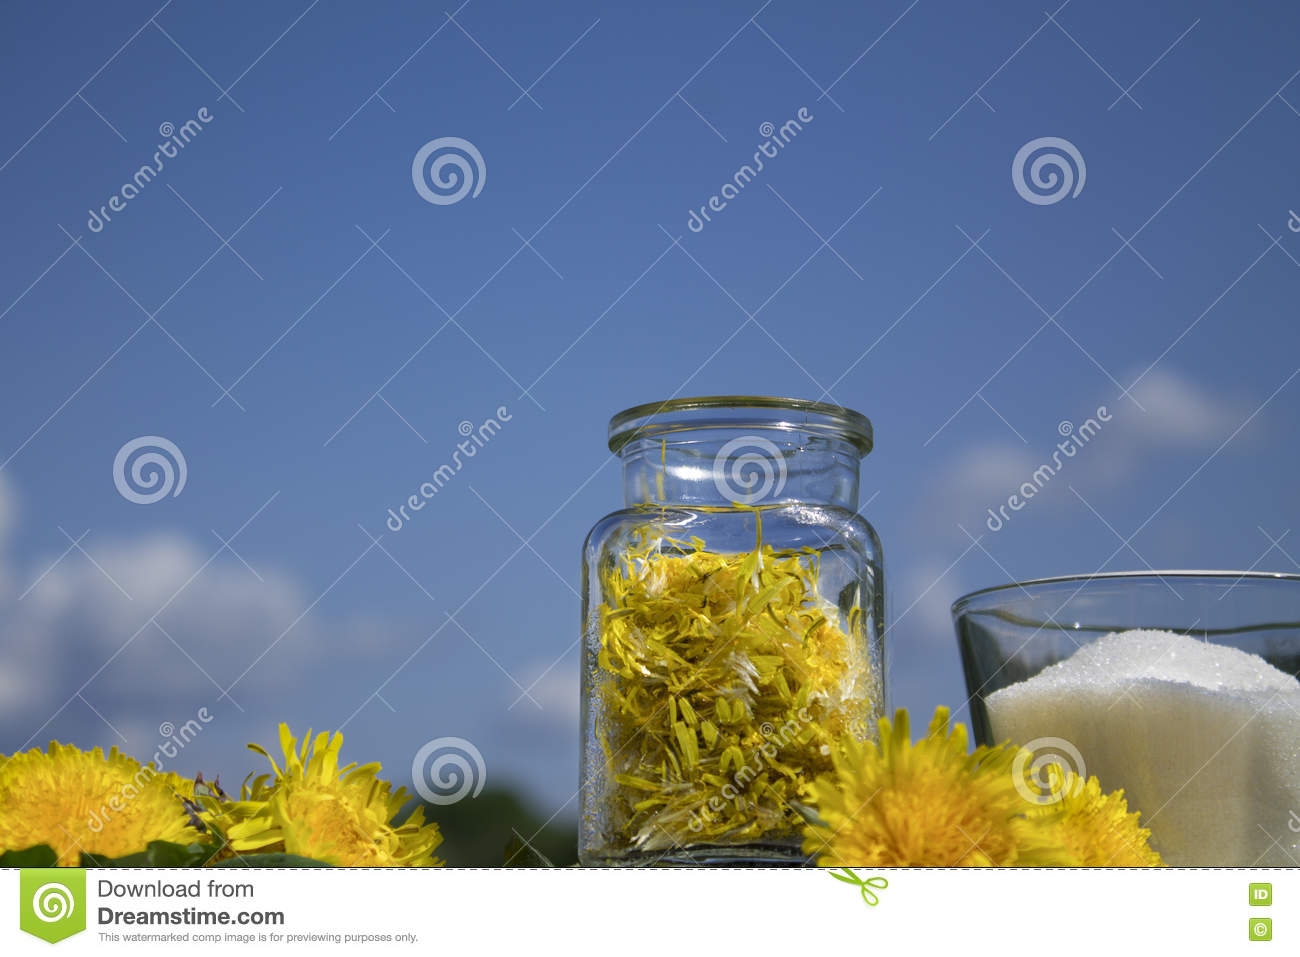 Jam from the flowers of dandelions